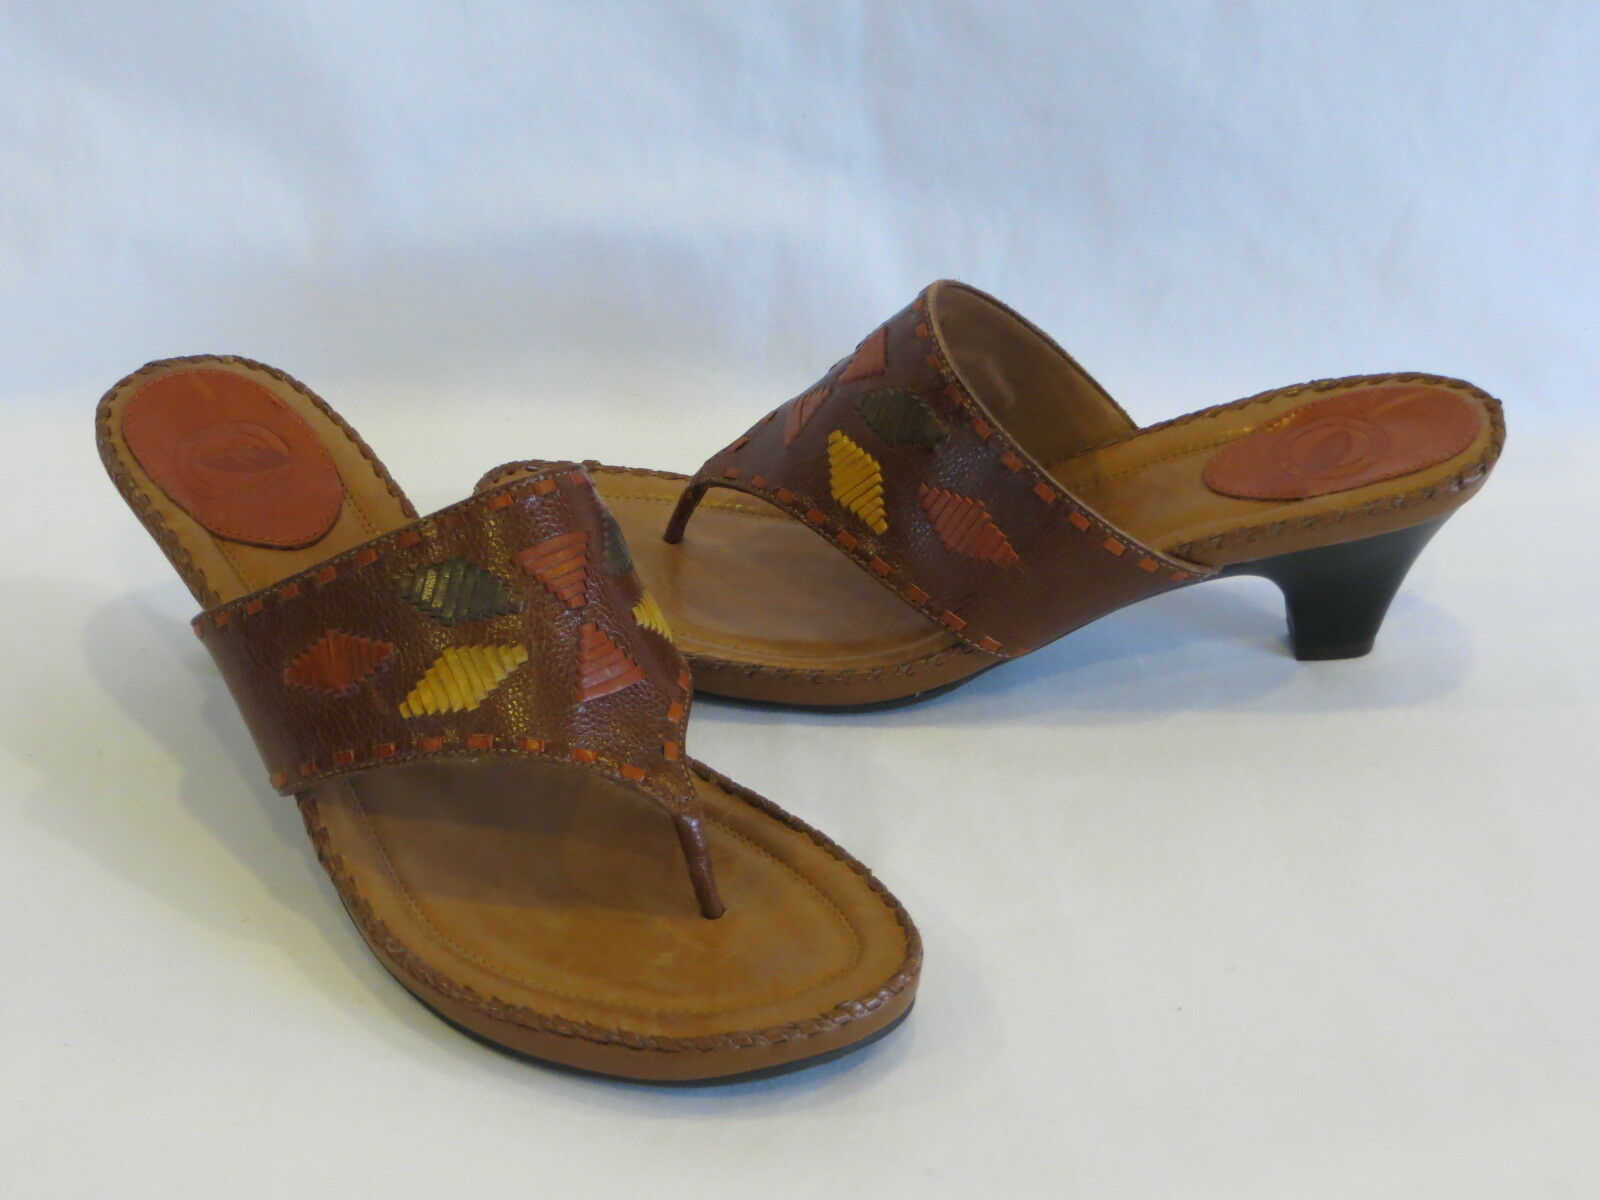 Nurture Brown Multi color Leather Thongs Sandals Slides - 9.5M - NEW